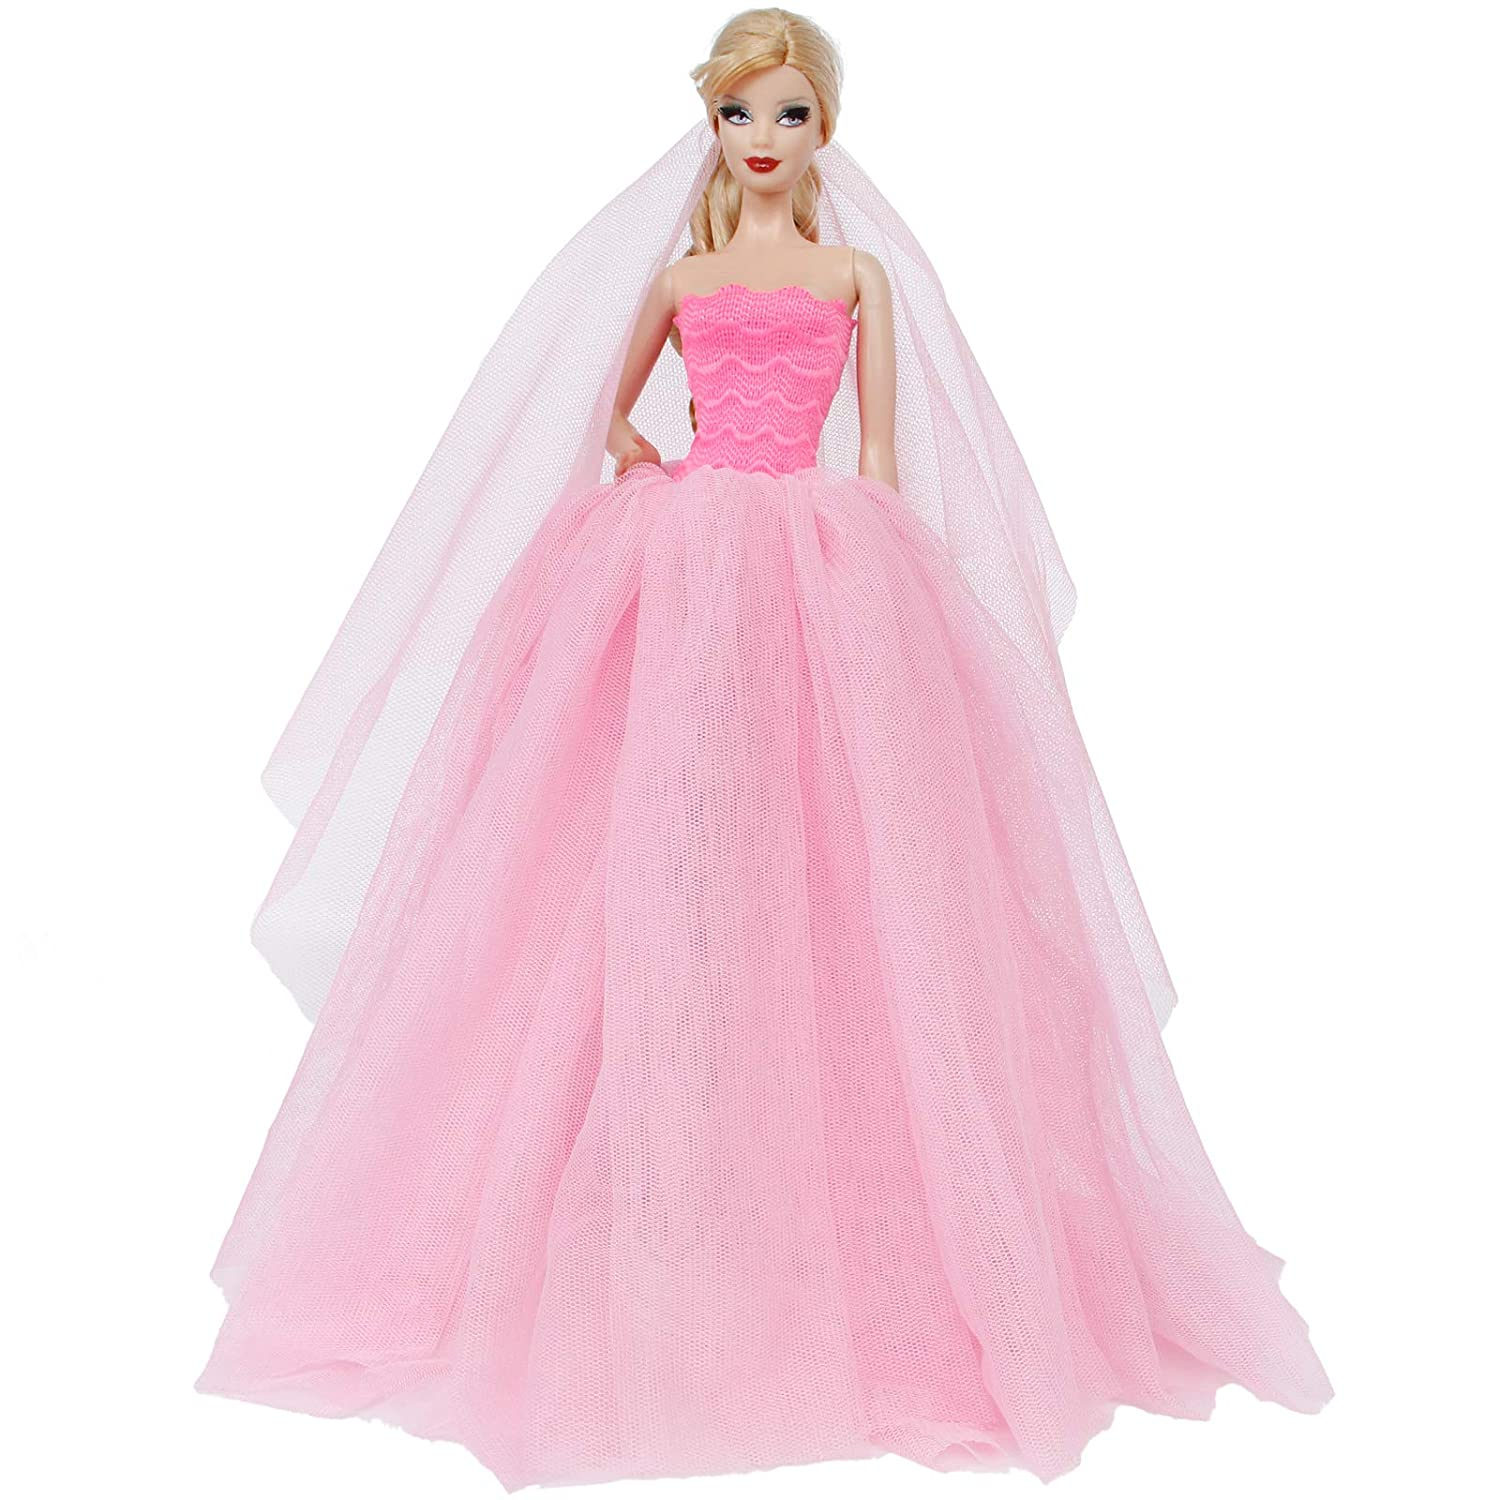 Pink BJDBUS Strapless Elastic Top Wedding Dress with Veil Evening Party Gown Princess Clothes for 11.5 Inch Girl Doll Generic As shown in Image